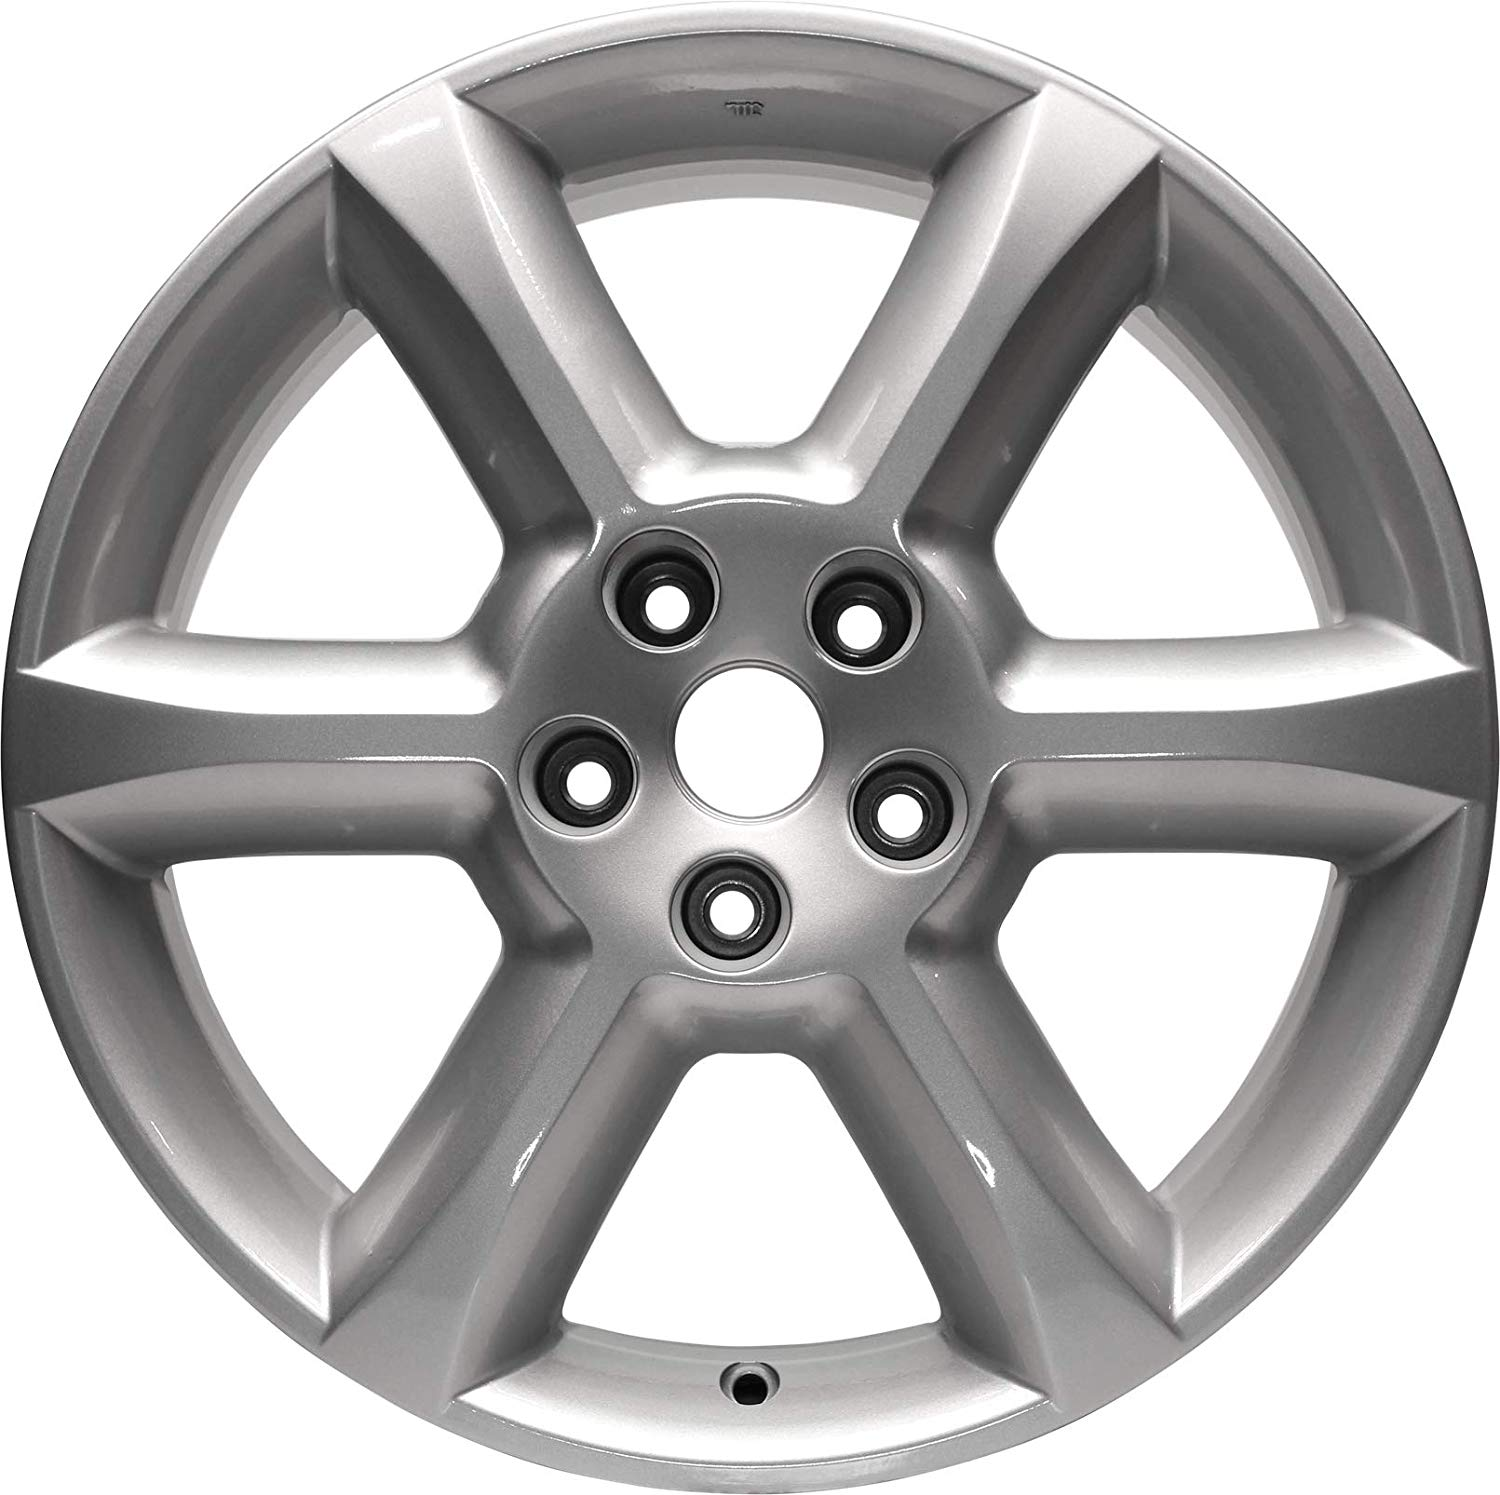 Partsynergy Replacement For New Aluminum Alloy Wheel Rim 18 Inch ...